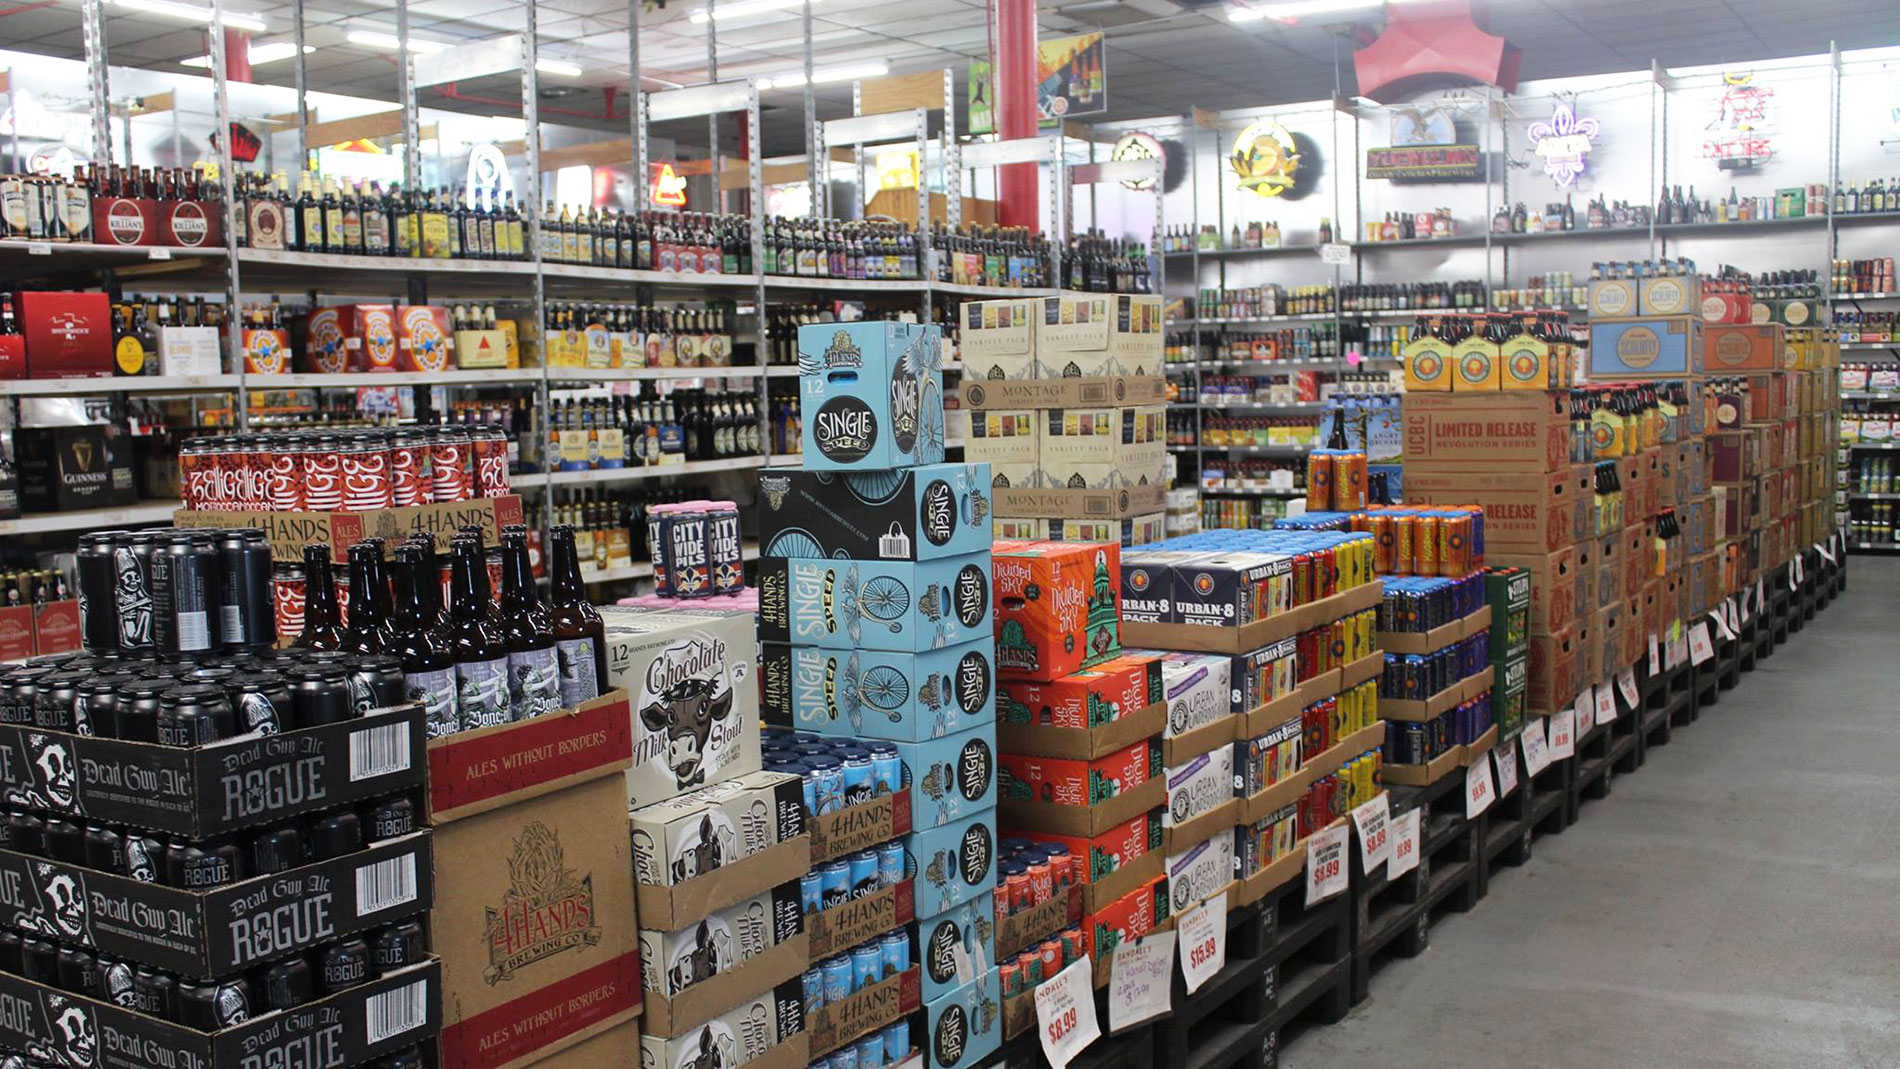 randall's wines and spirits in st. louis